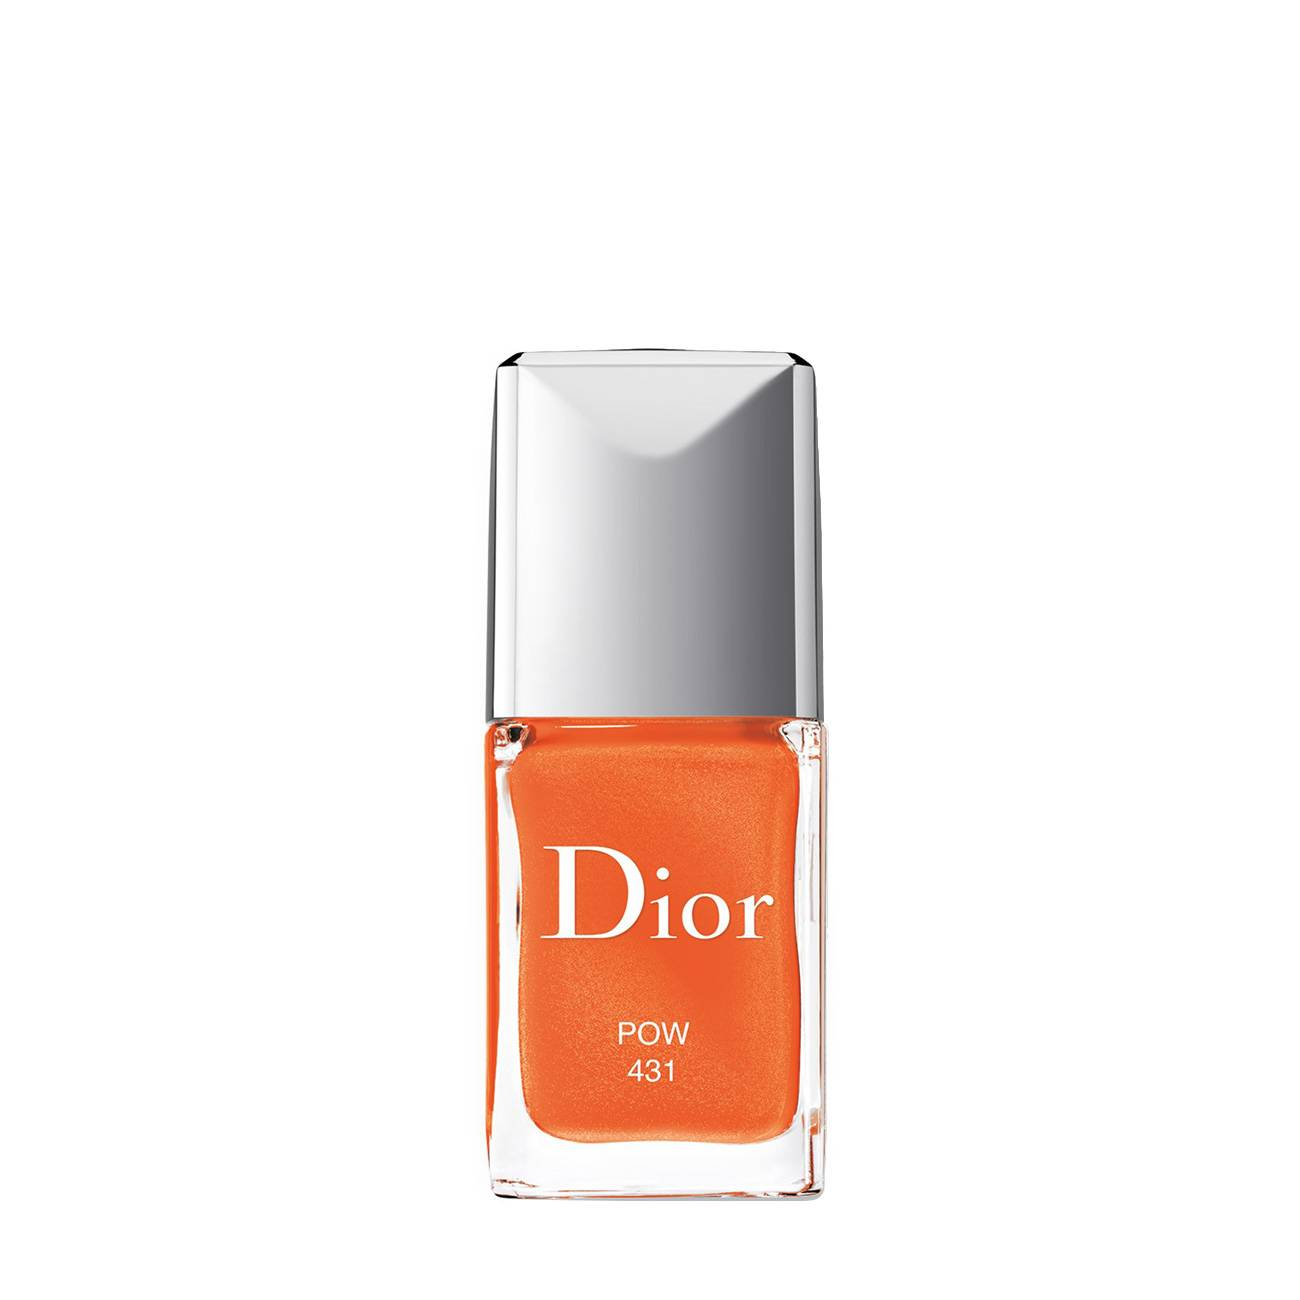 Dior Vernis 431 10ml Dior imagine 2021 bestvalue.eu